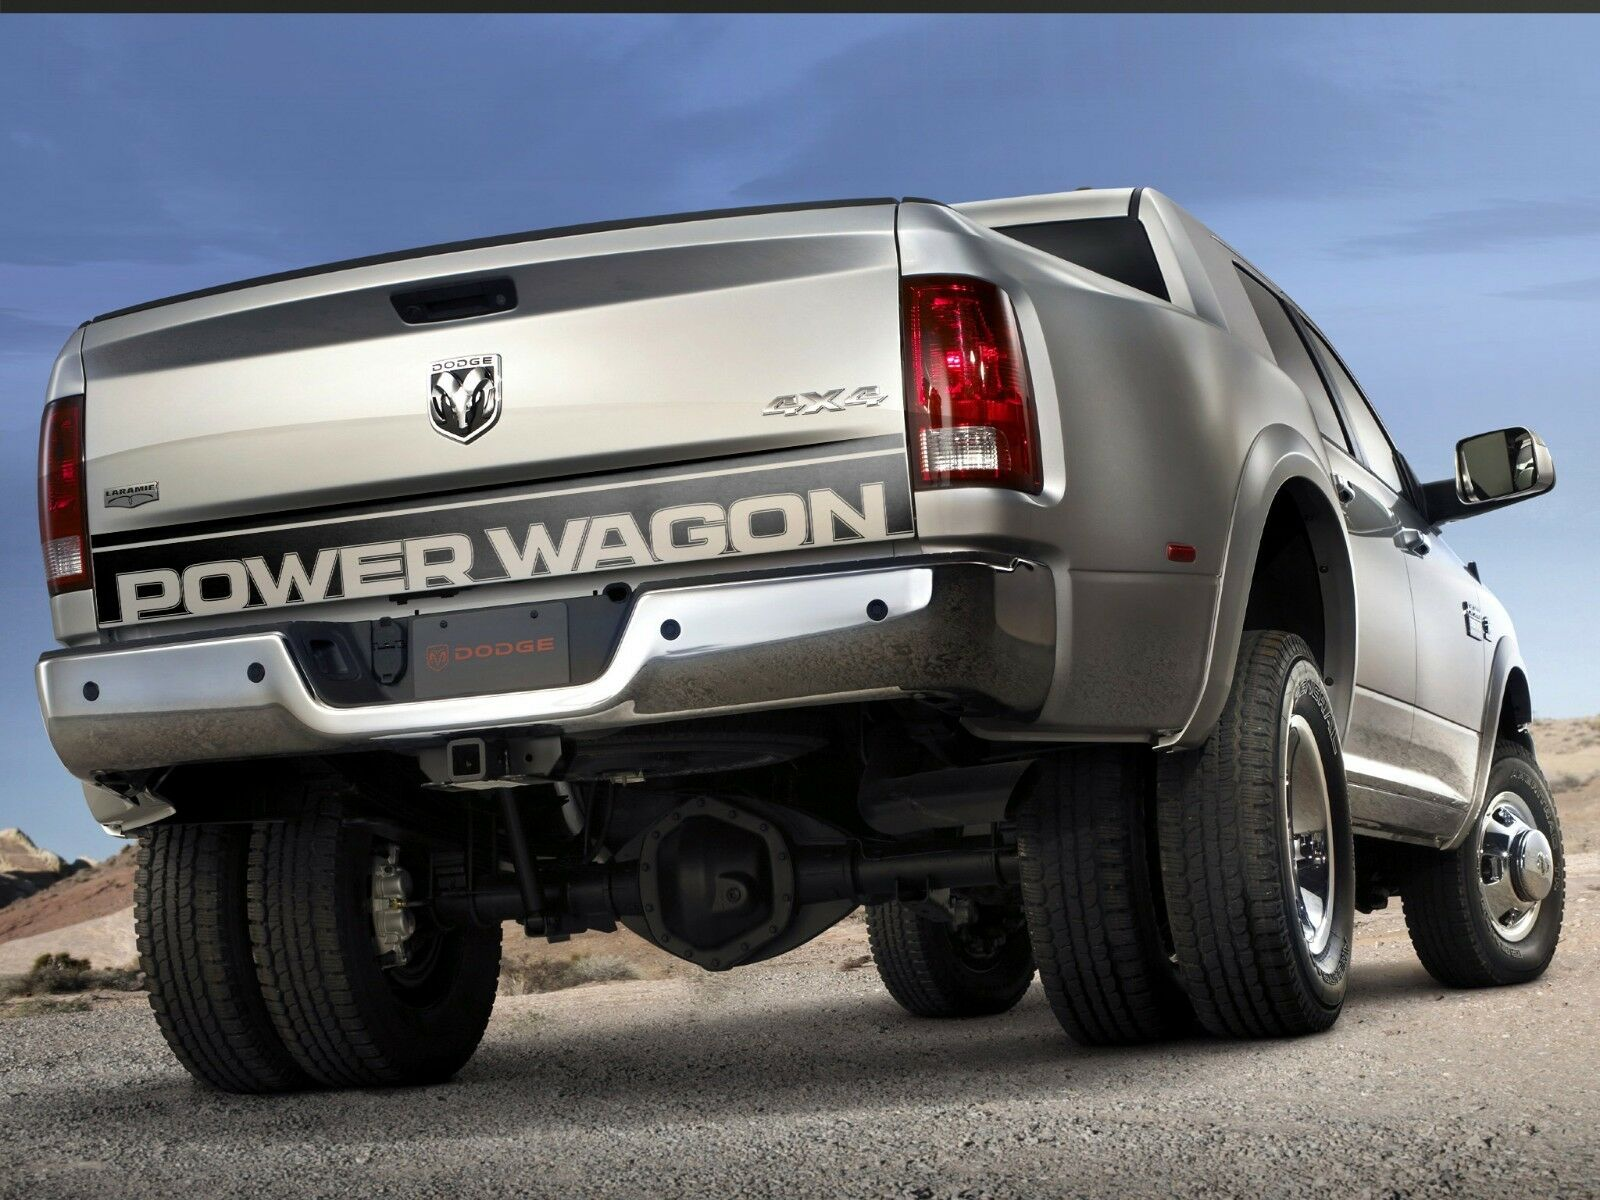 Details about dodge ram 1500 power wagon truck tailgate accent vinyl graphics stripe decal